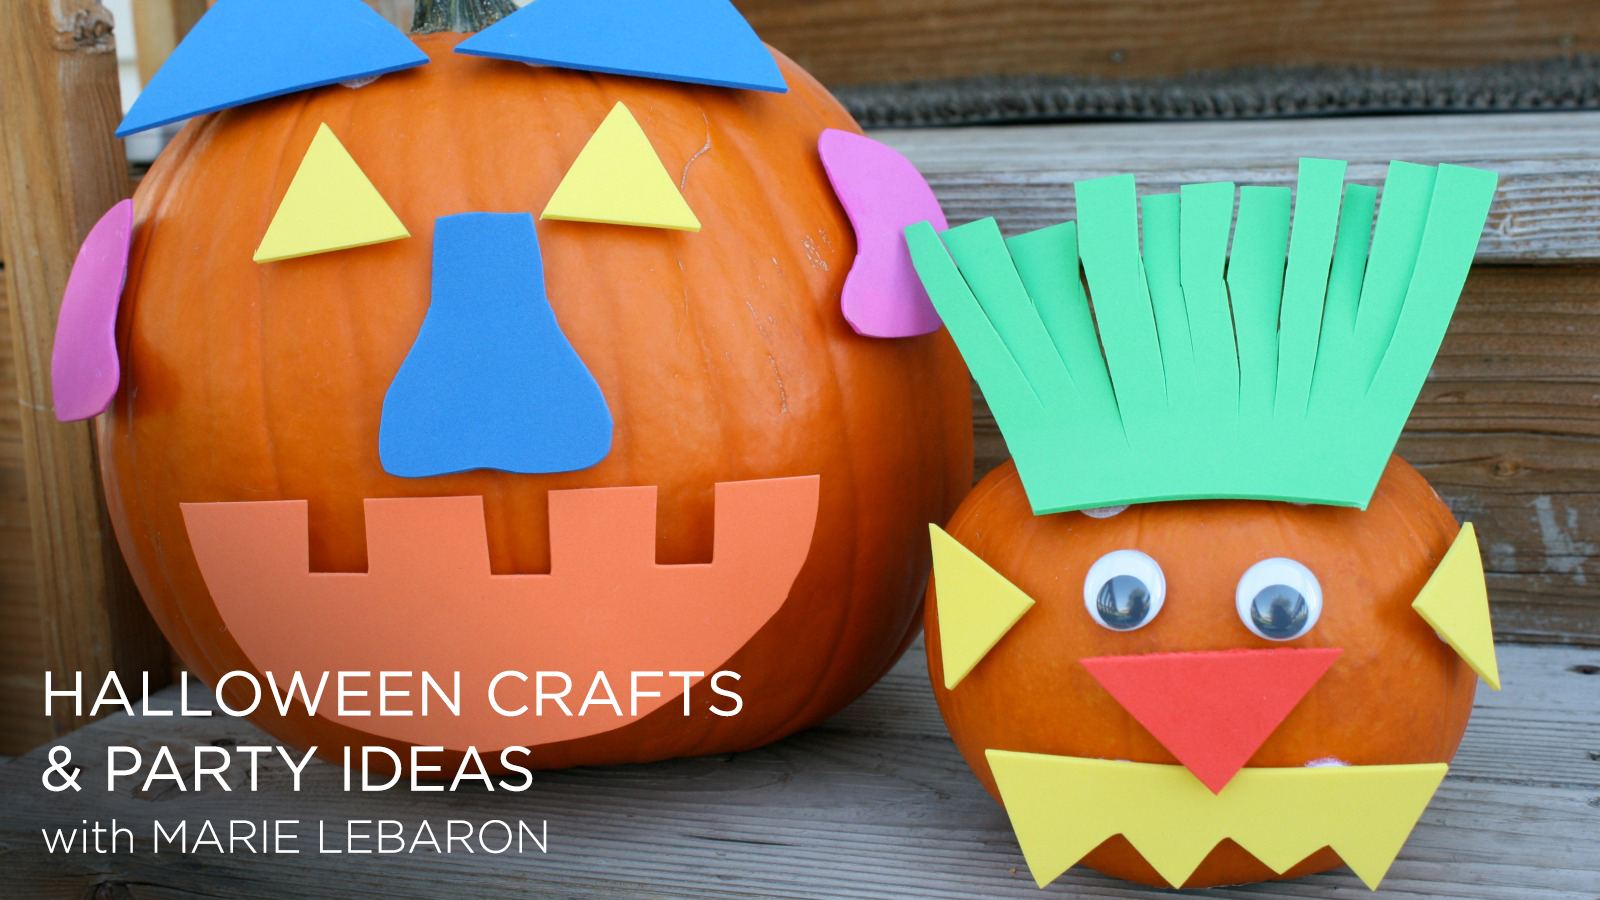 Marie_LeBron_Halloween_Crafts_and_Party_Ideas_text2_1600x900